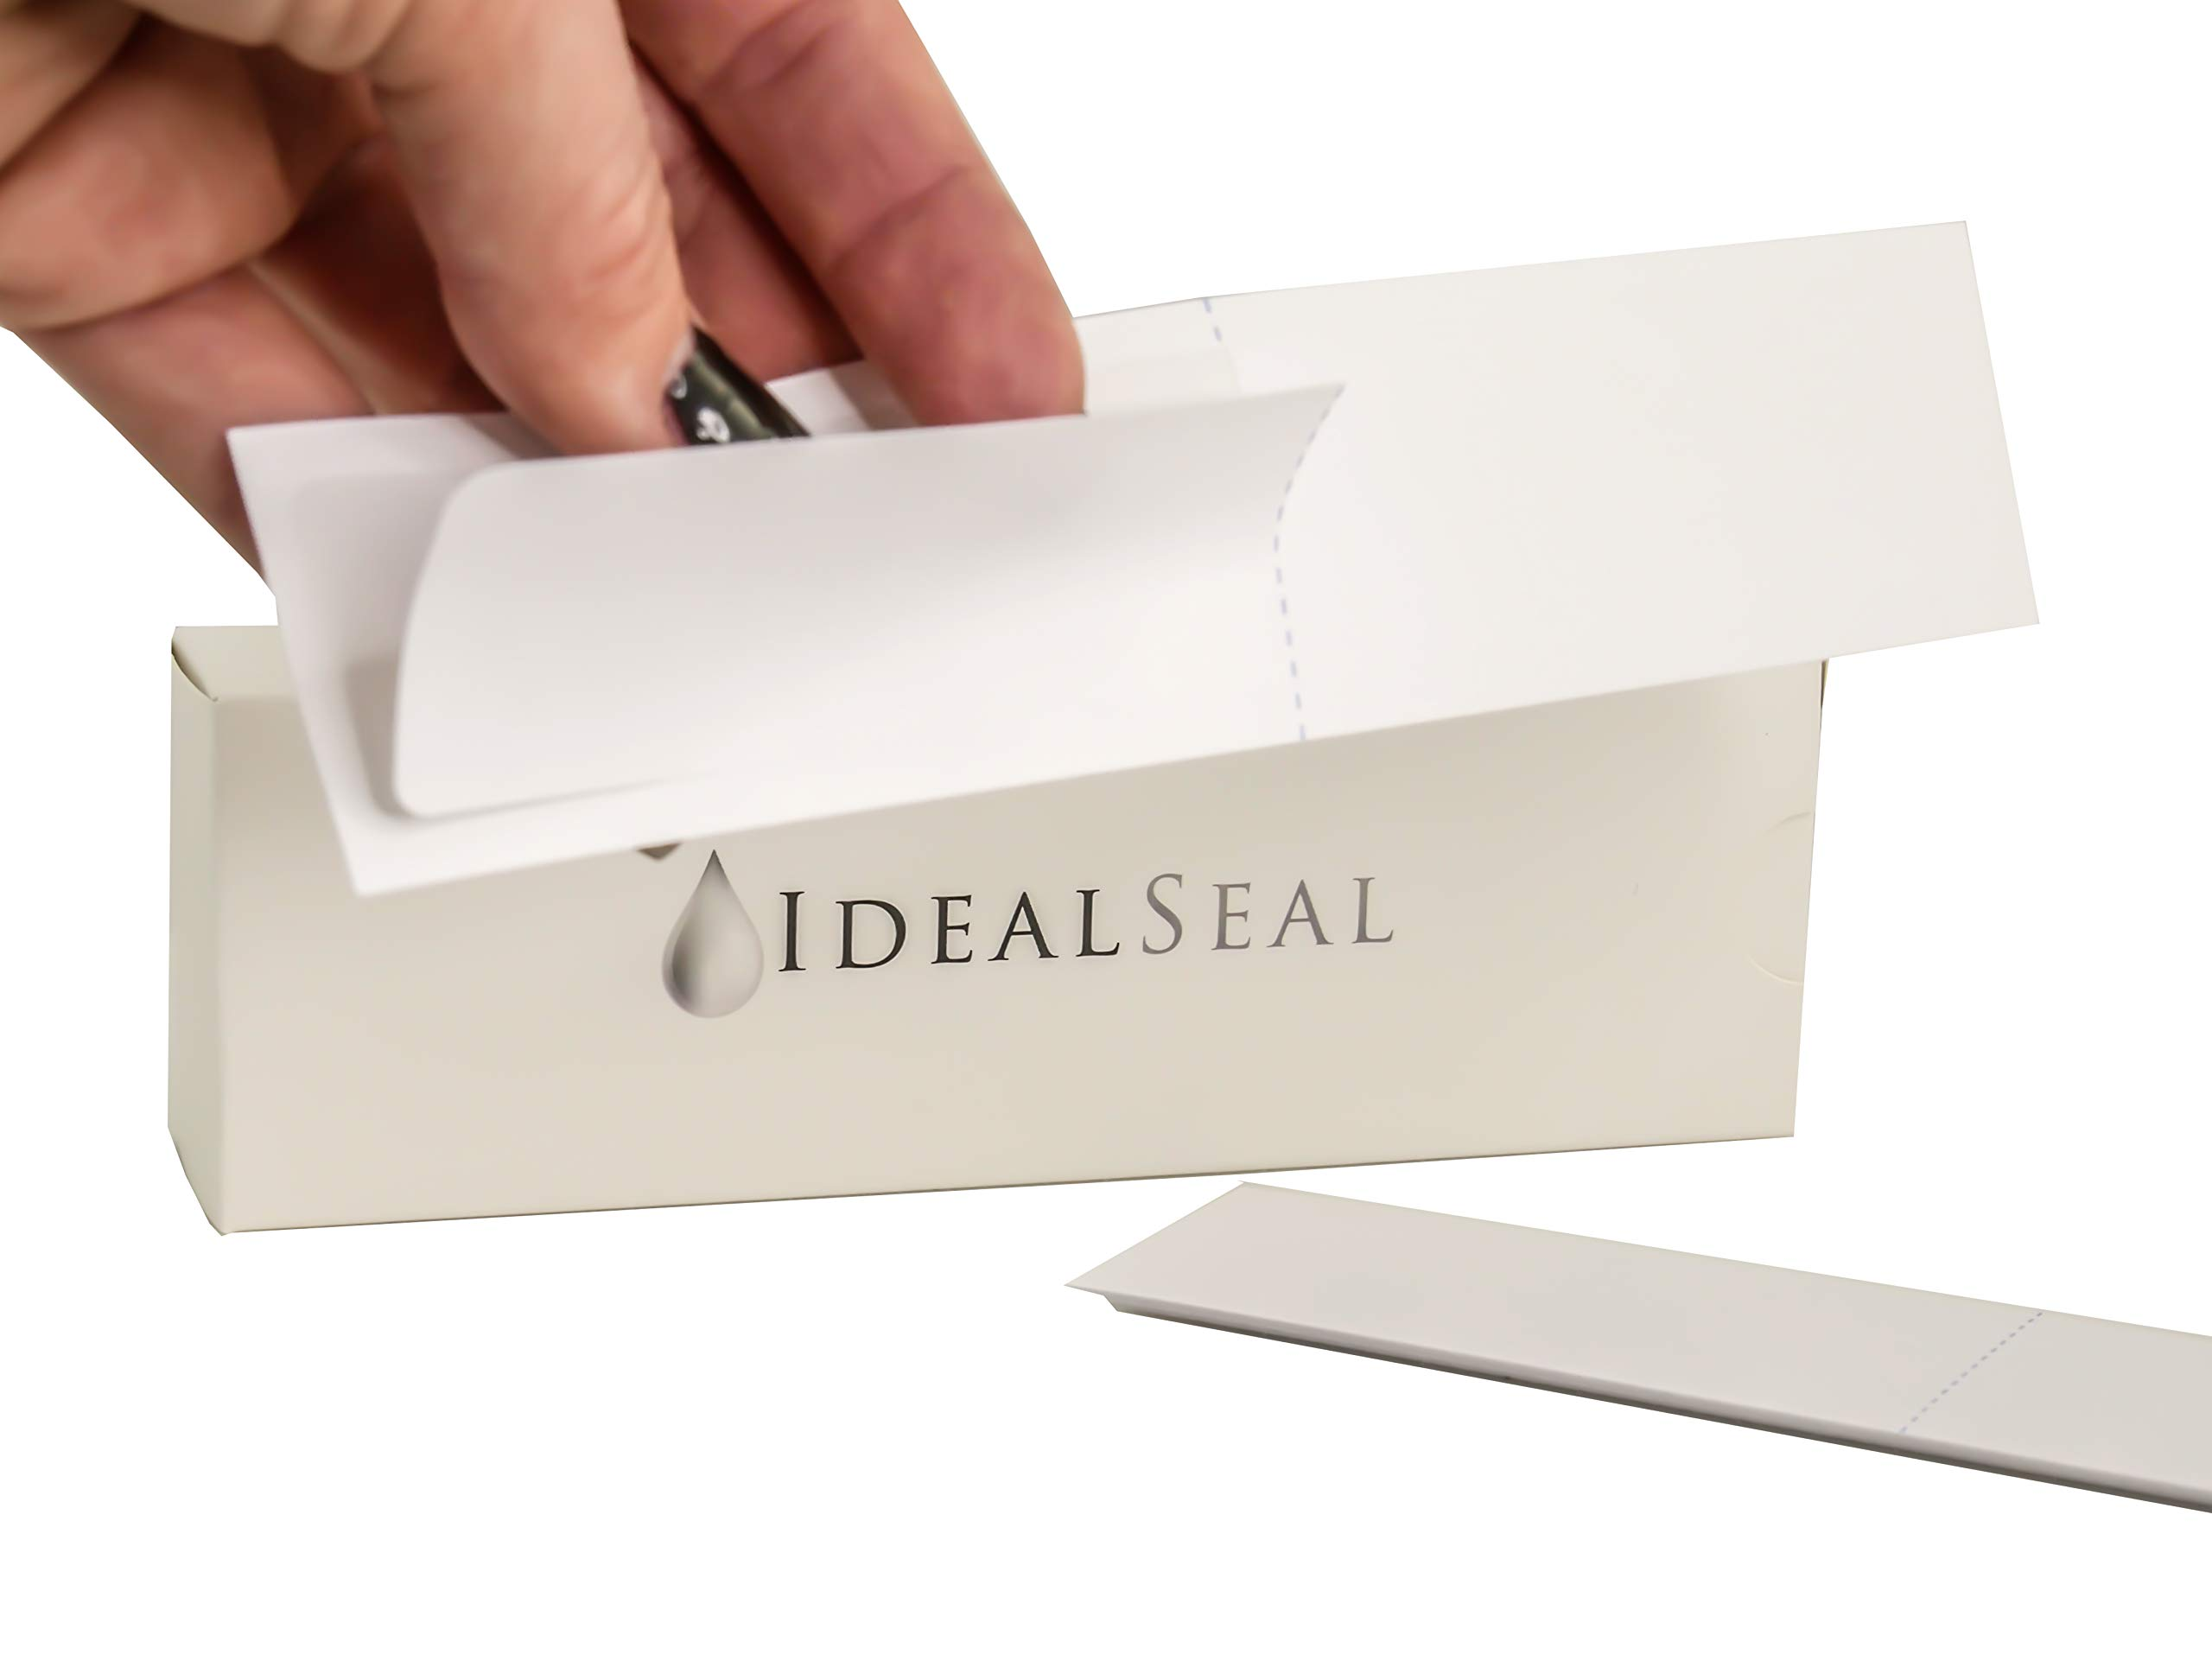 Preferred Postage Supplies Neopost Postage Meter Tapes Double Strip Tape 7'' x 19/16''Neopost7465593/PT2N03/PT2N12 Hasler 9004020/PT2H03 Ultra by IDEALSEAL